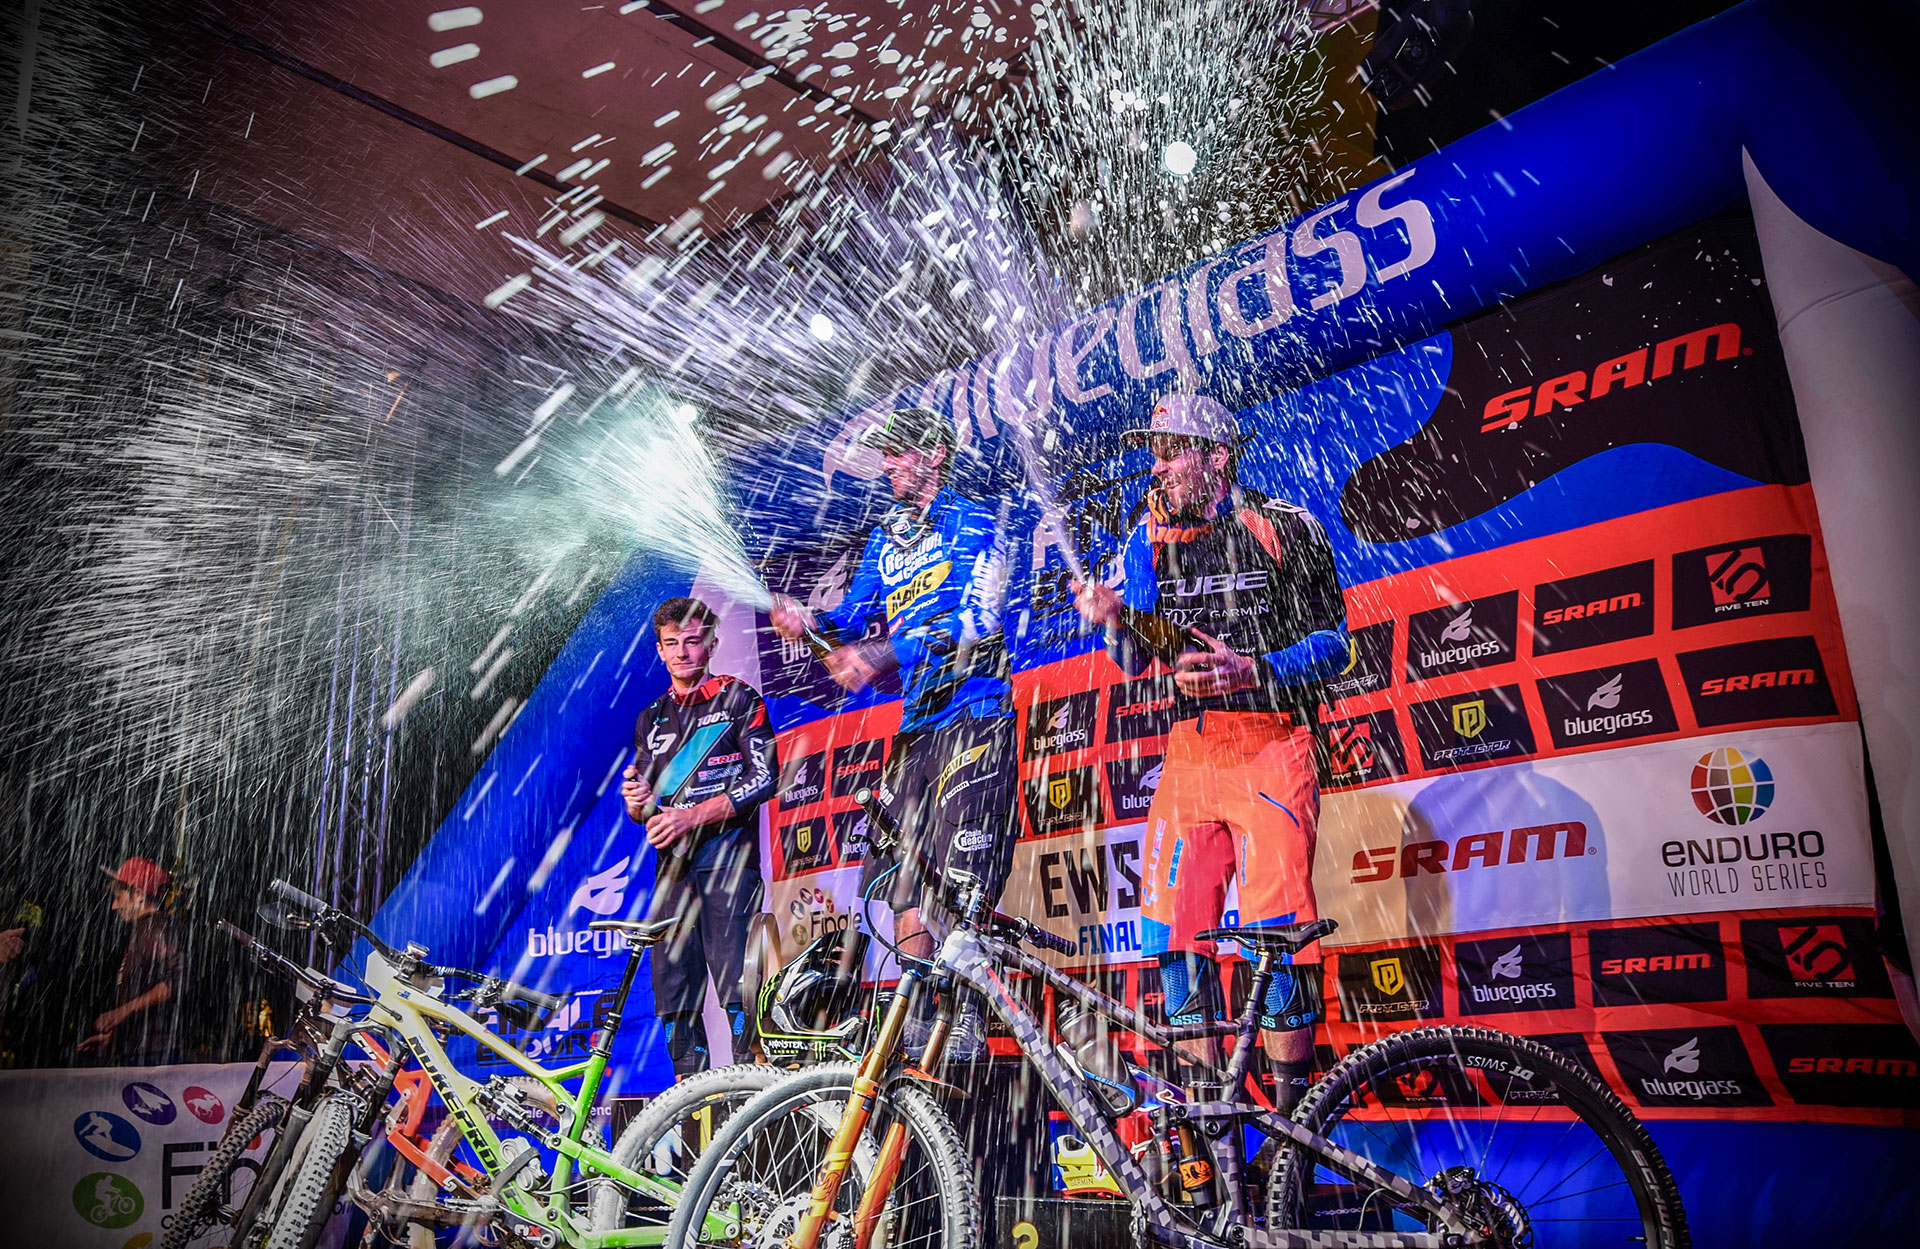 Le podium des Enduro World Series 2017. De gauche à droite : Adrien Dailly (2), Sam Hill (1), Gregory Callaghan (3). © Claus Wachsmann